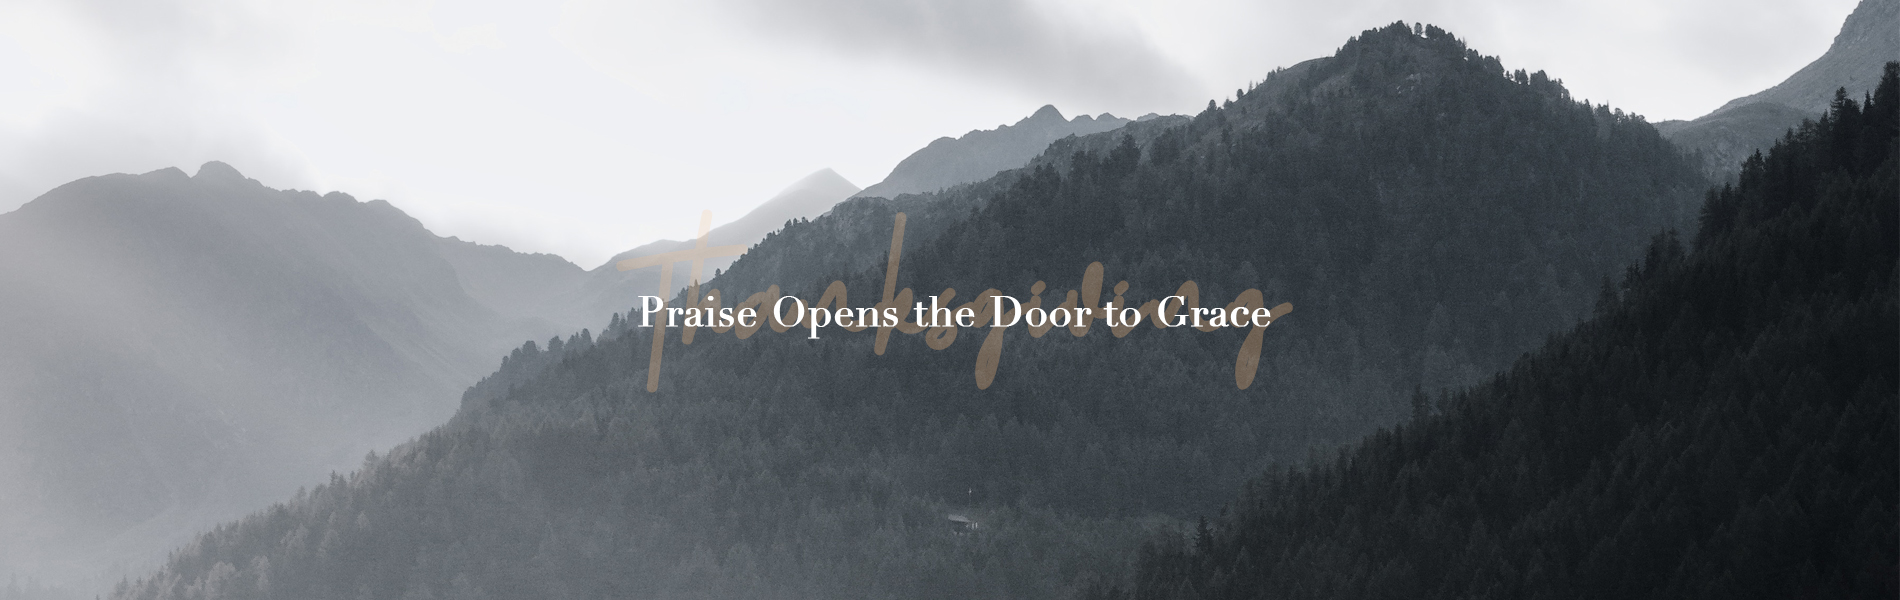 08-Aug_Praise-Opens-The-Door-To-Grace New Creation TV | Broadcasting the Gospel of Jesus